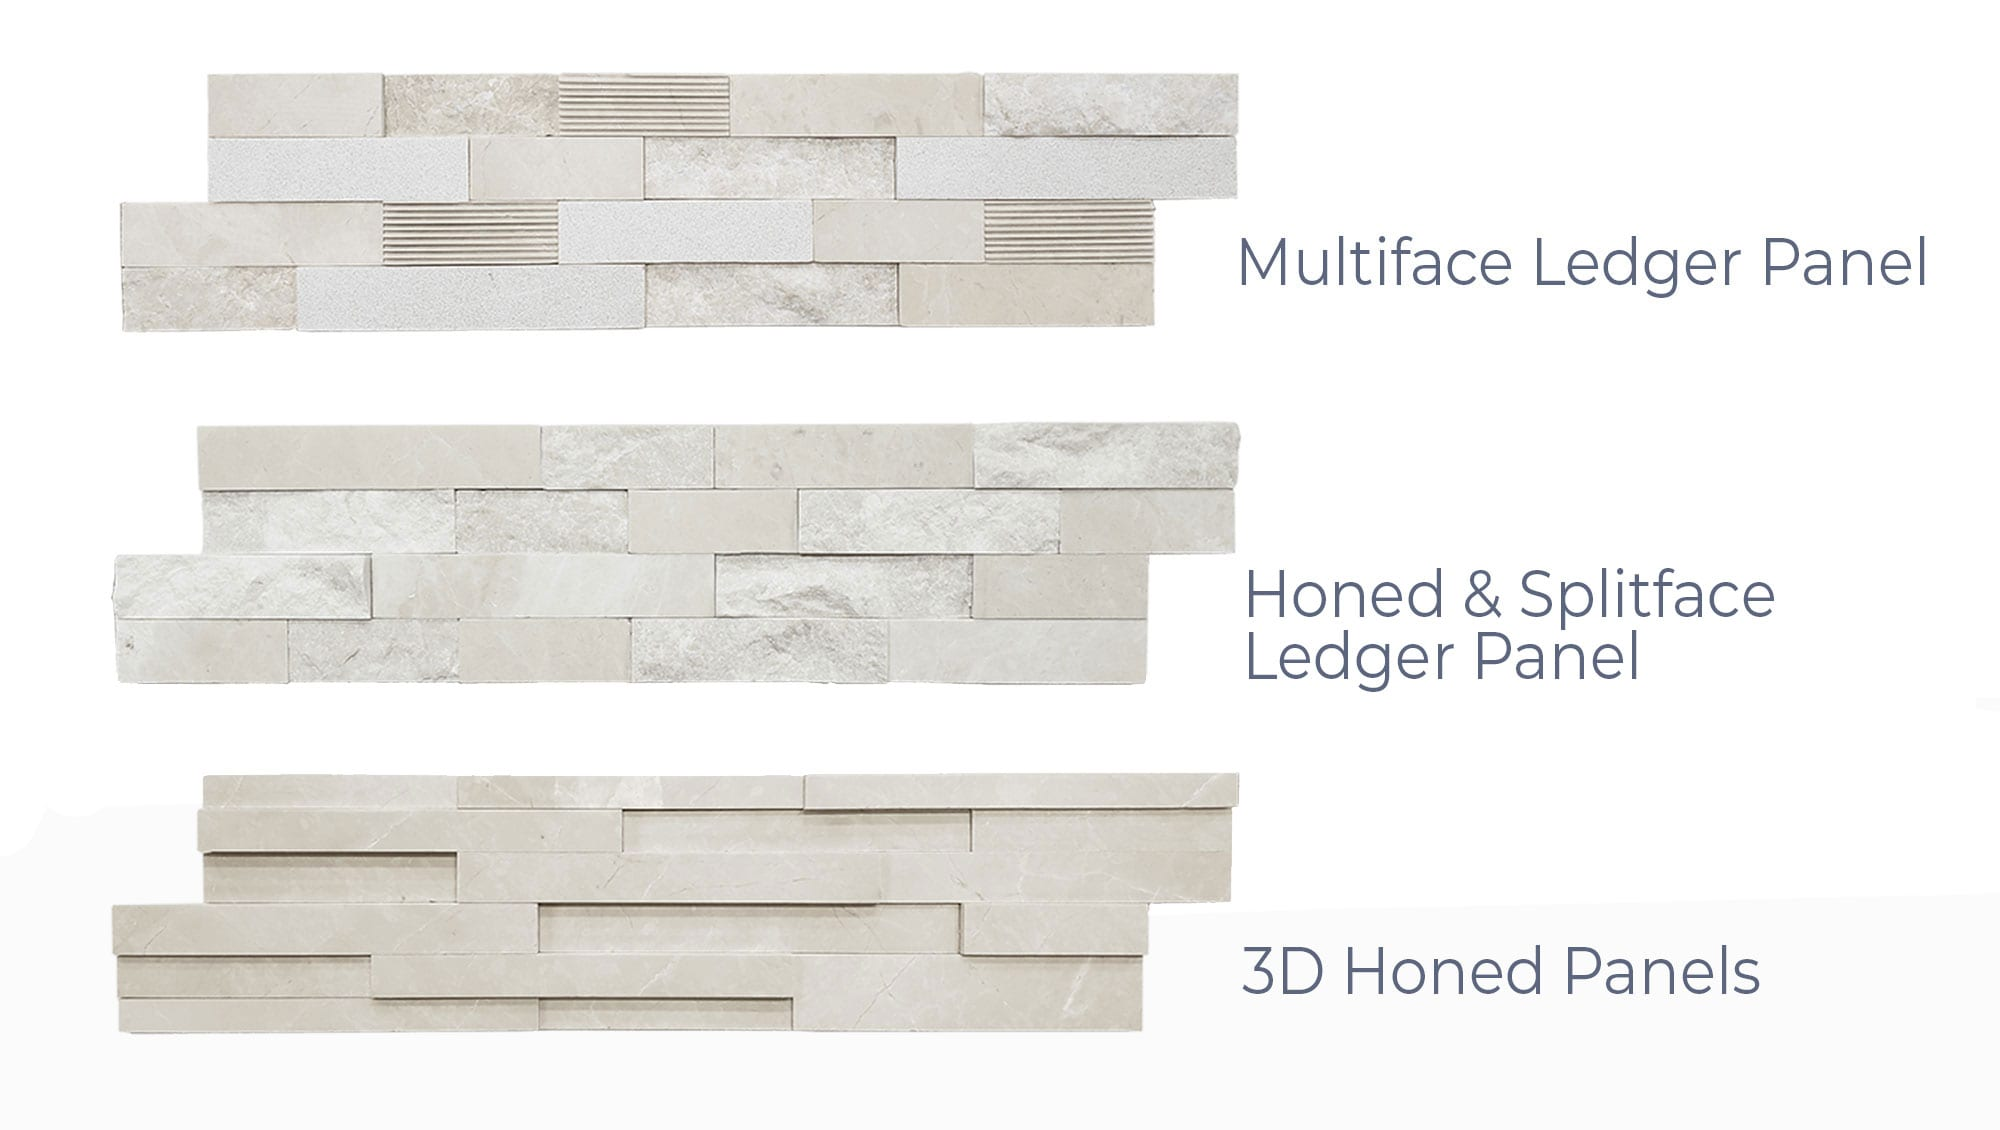 Stoneline-Group-Bottichino-Marble-Collection-Marble-Veneer-Multi-face-honed-split-face-3d-honed-ledger-panels-Pictures-variation